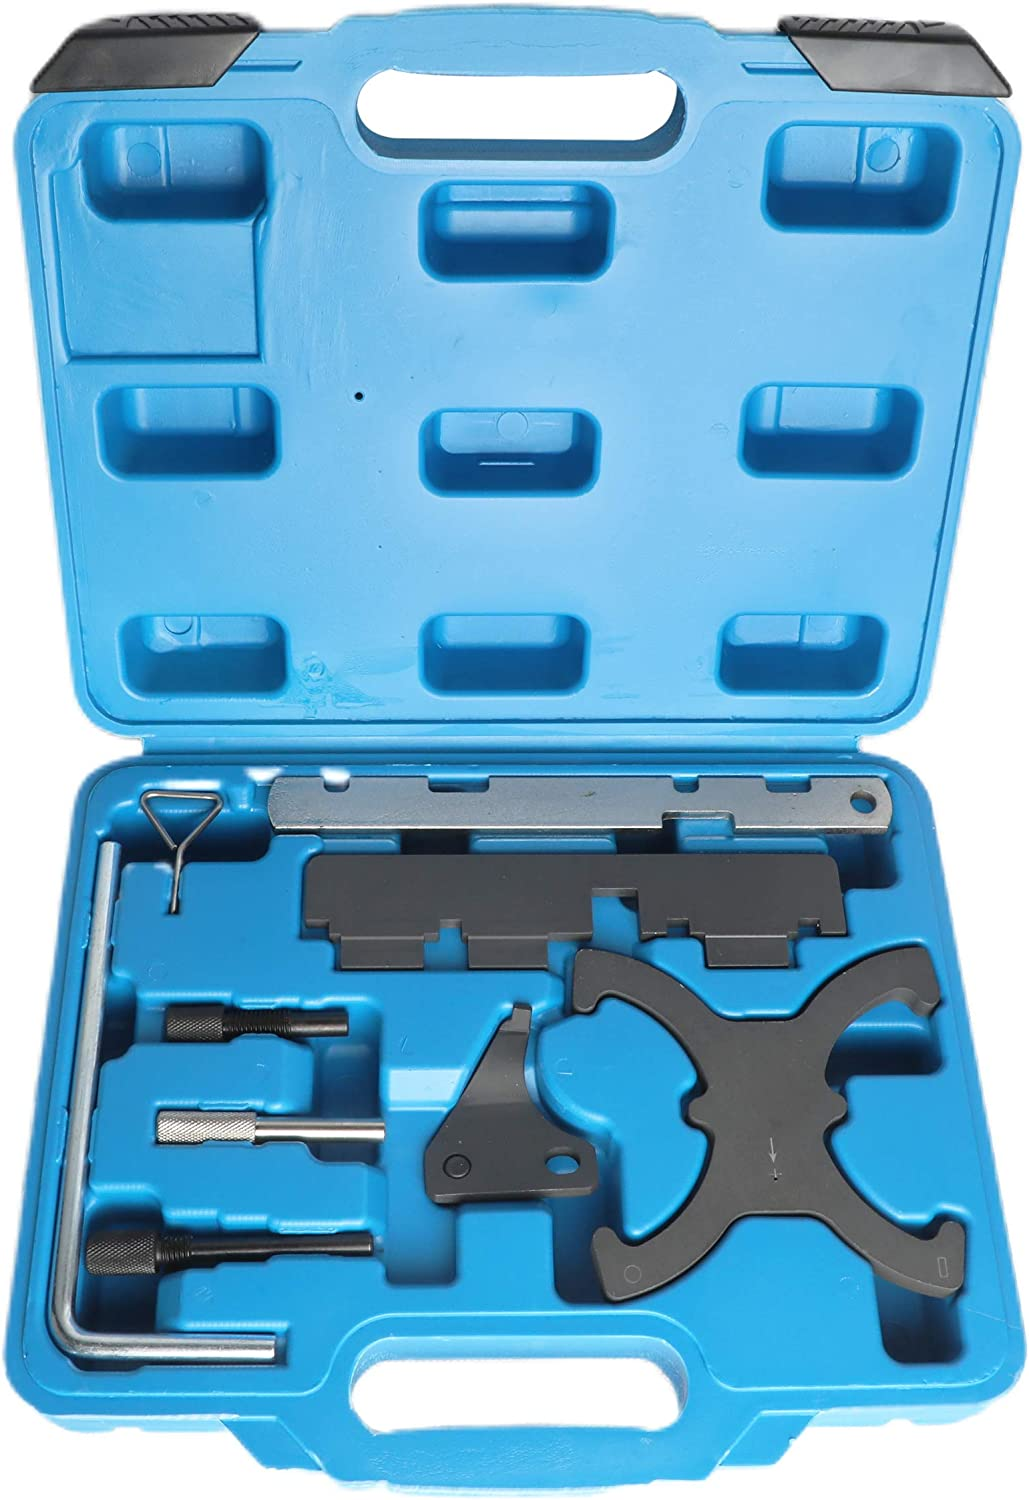 BELEY Auto Engine Camshaft Belt Timing Locking Tool Set Compatible with Ford 1.5 1.6 Fiesta VCT Focus//C Max 1.6 VCT-Ti